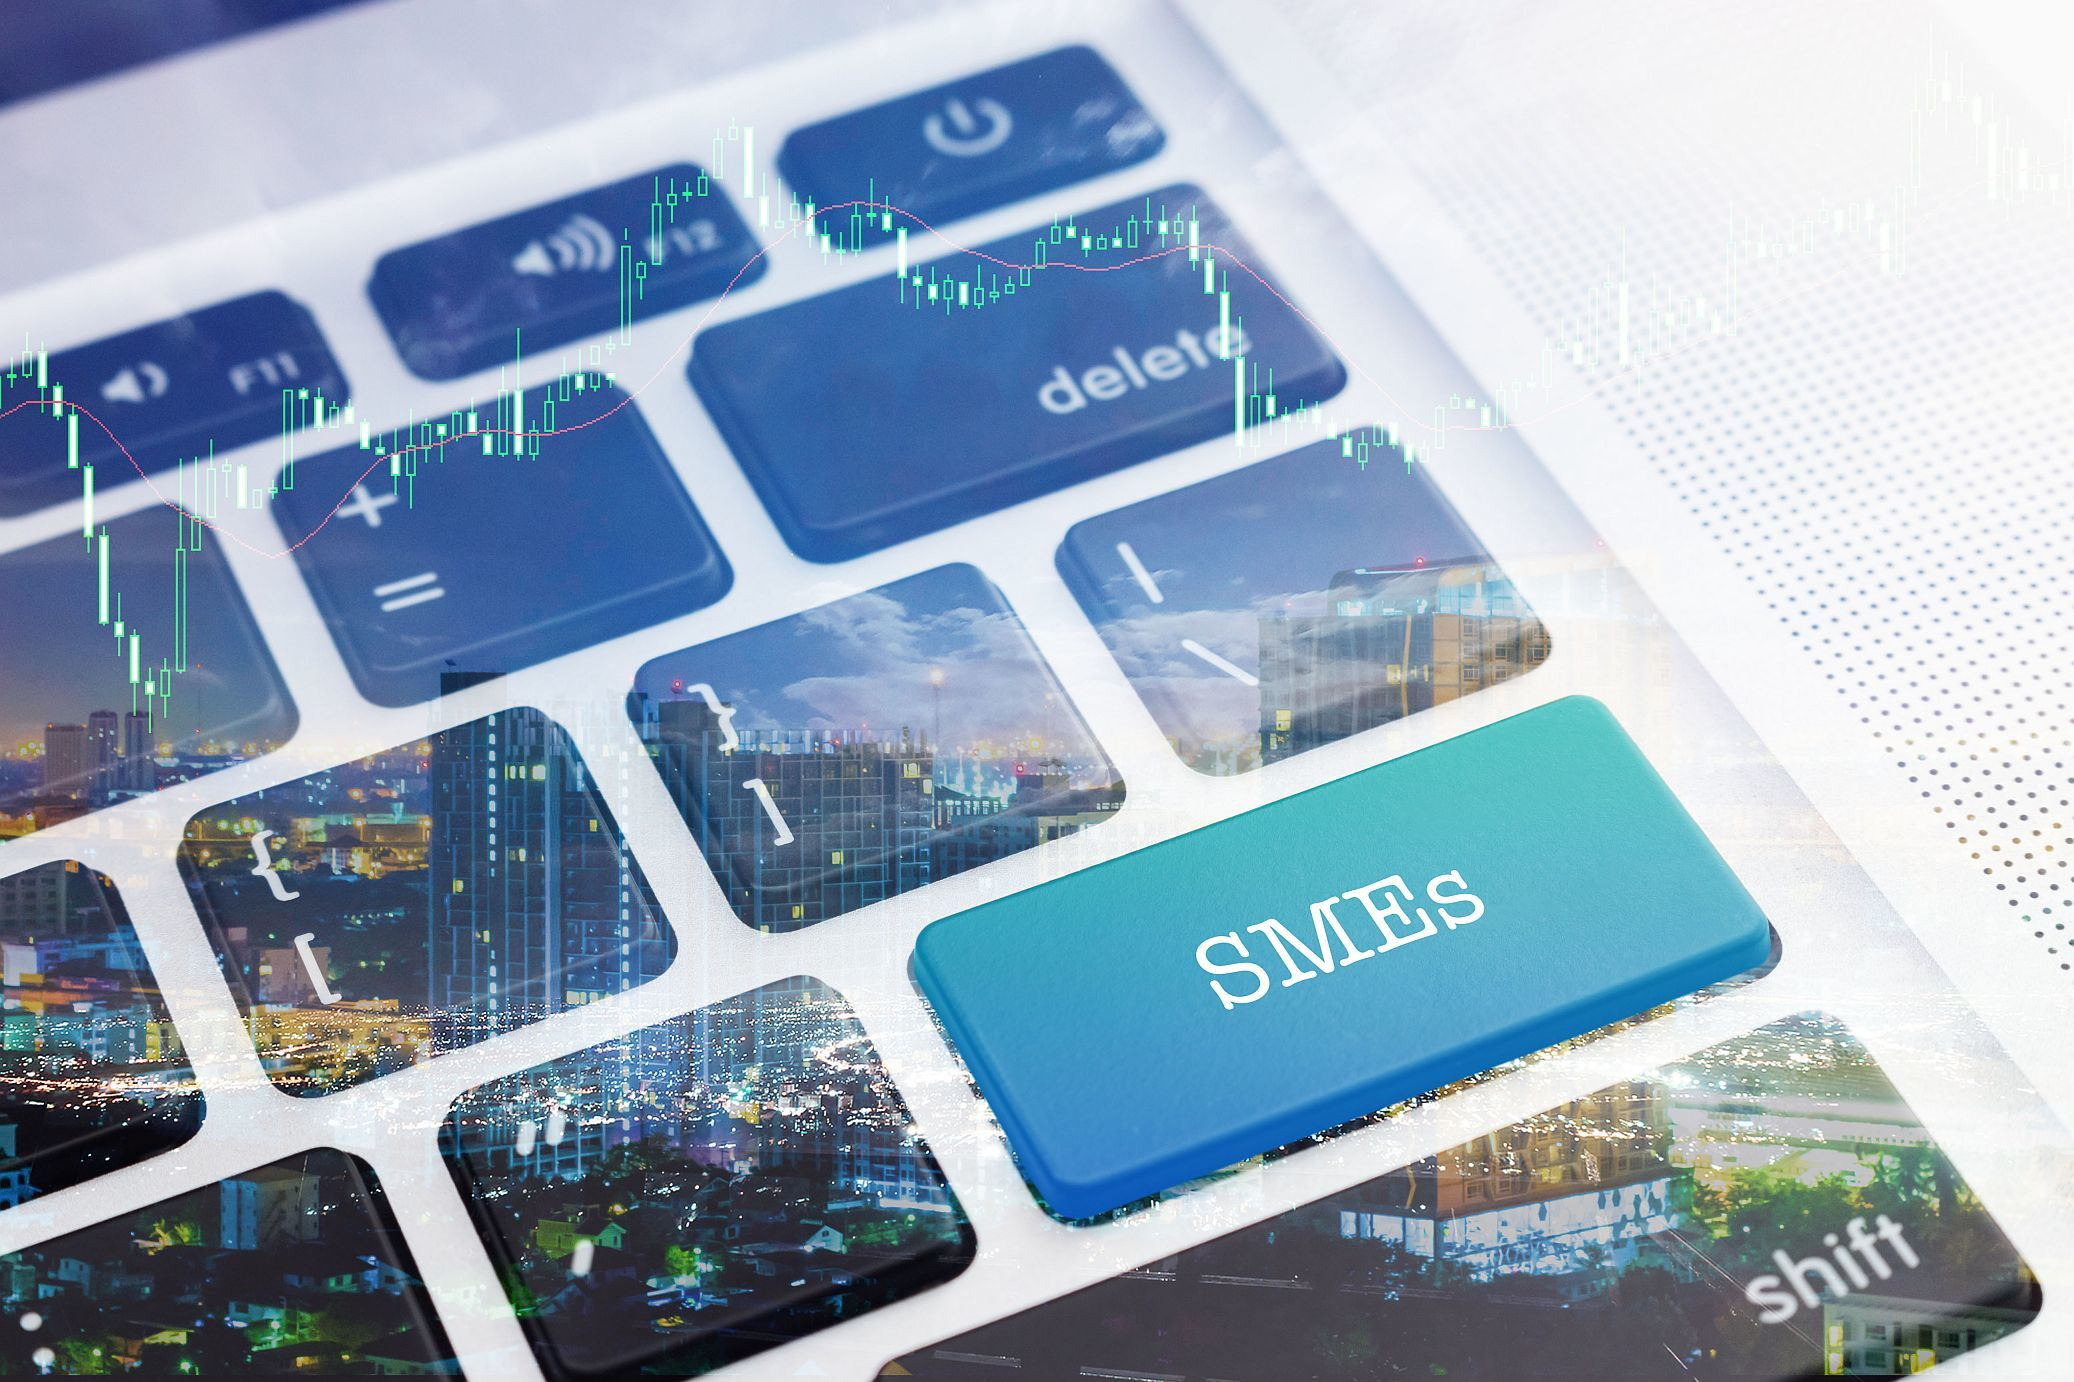 smes in europe Sme internationalisation in central and eastern europe 3 small and medium-sized enterprises (smes) form the potential powerhouse of european.